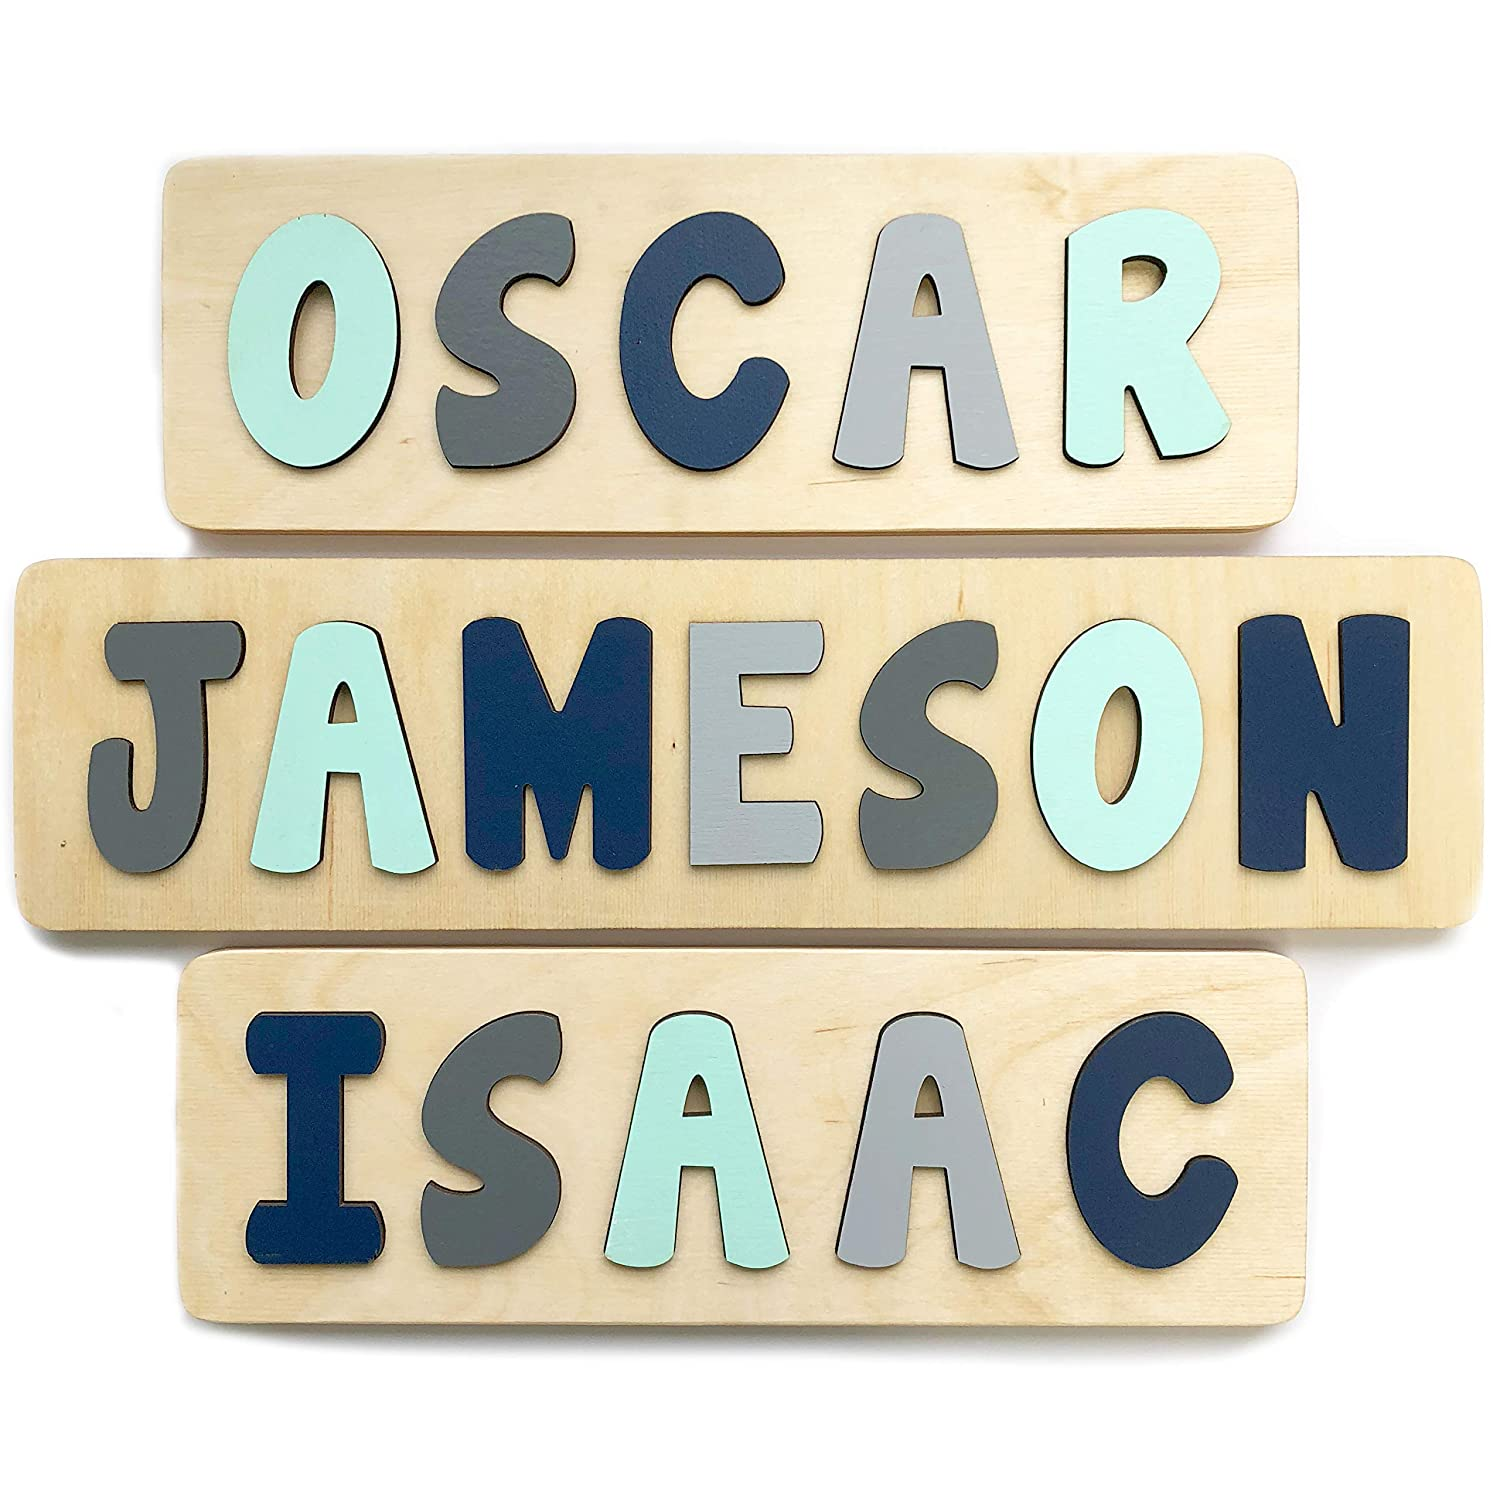 B07KMMD3BT Personalized Wooden Name Puzzle, Gift for One or Two Year Old Boy, Mint, Navy and Grey, Handmade in the USA by Page Brook Market 81VuPy9CZVL